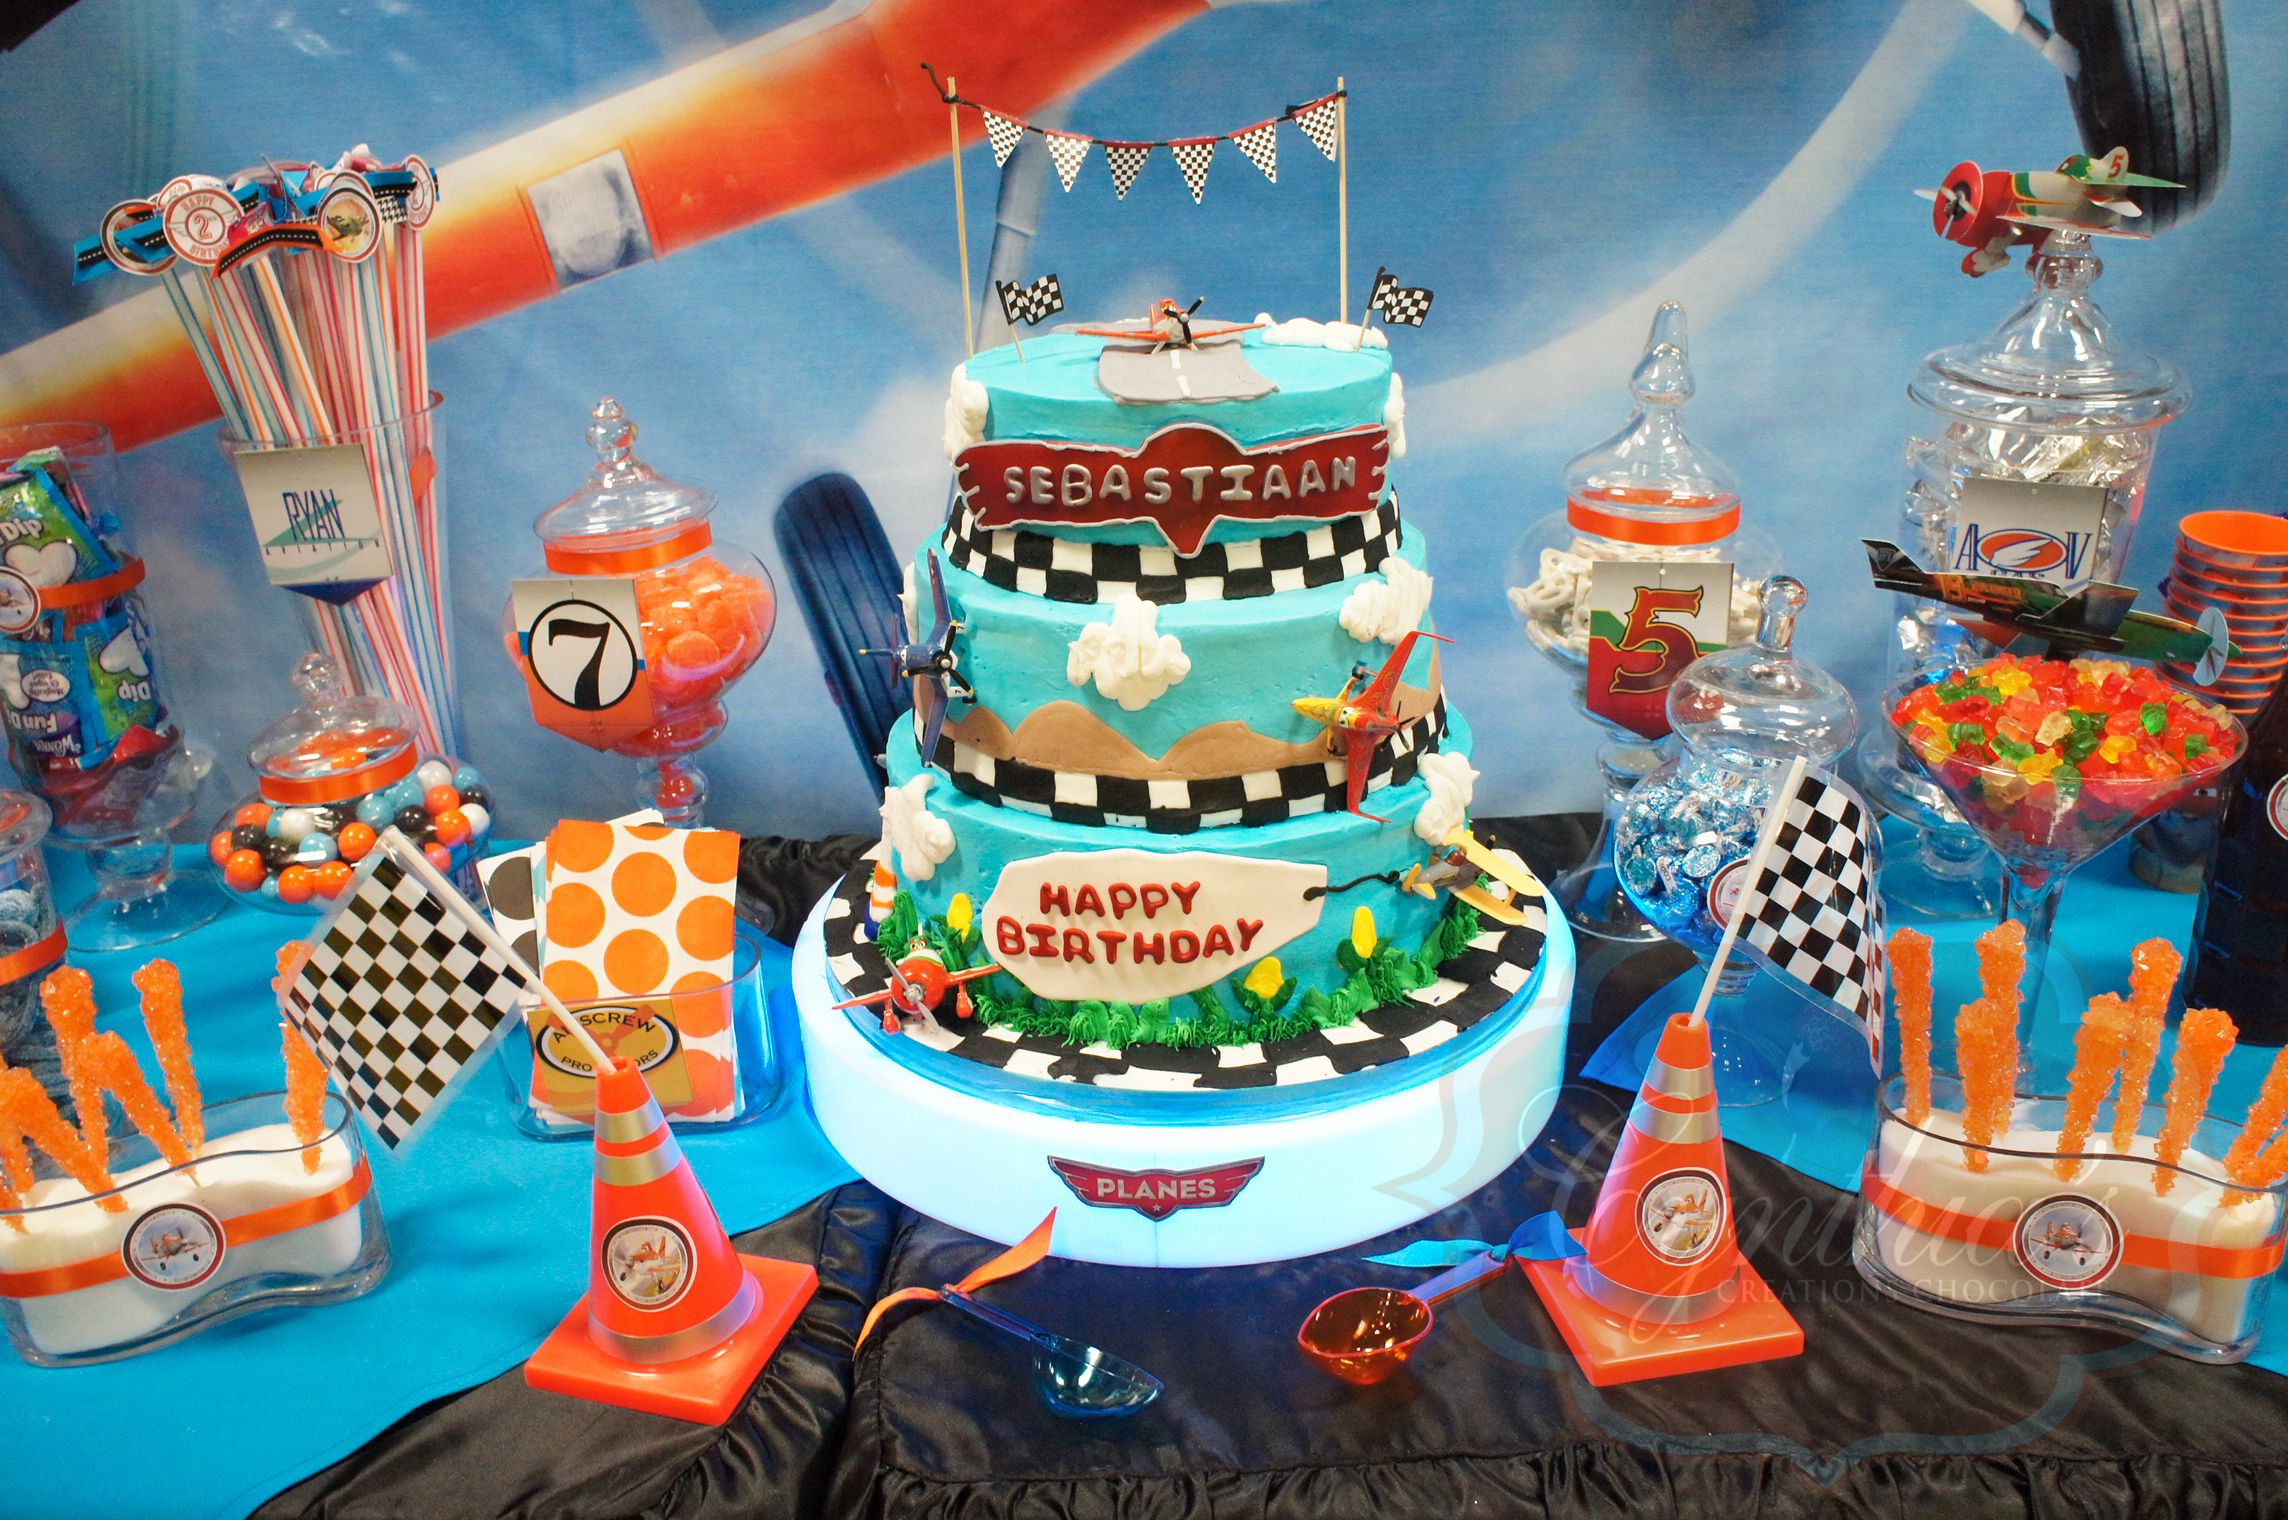 Disney Planes Theme Party Desert Table Candy Buffet Cake With